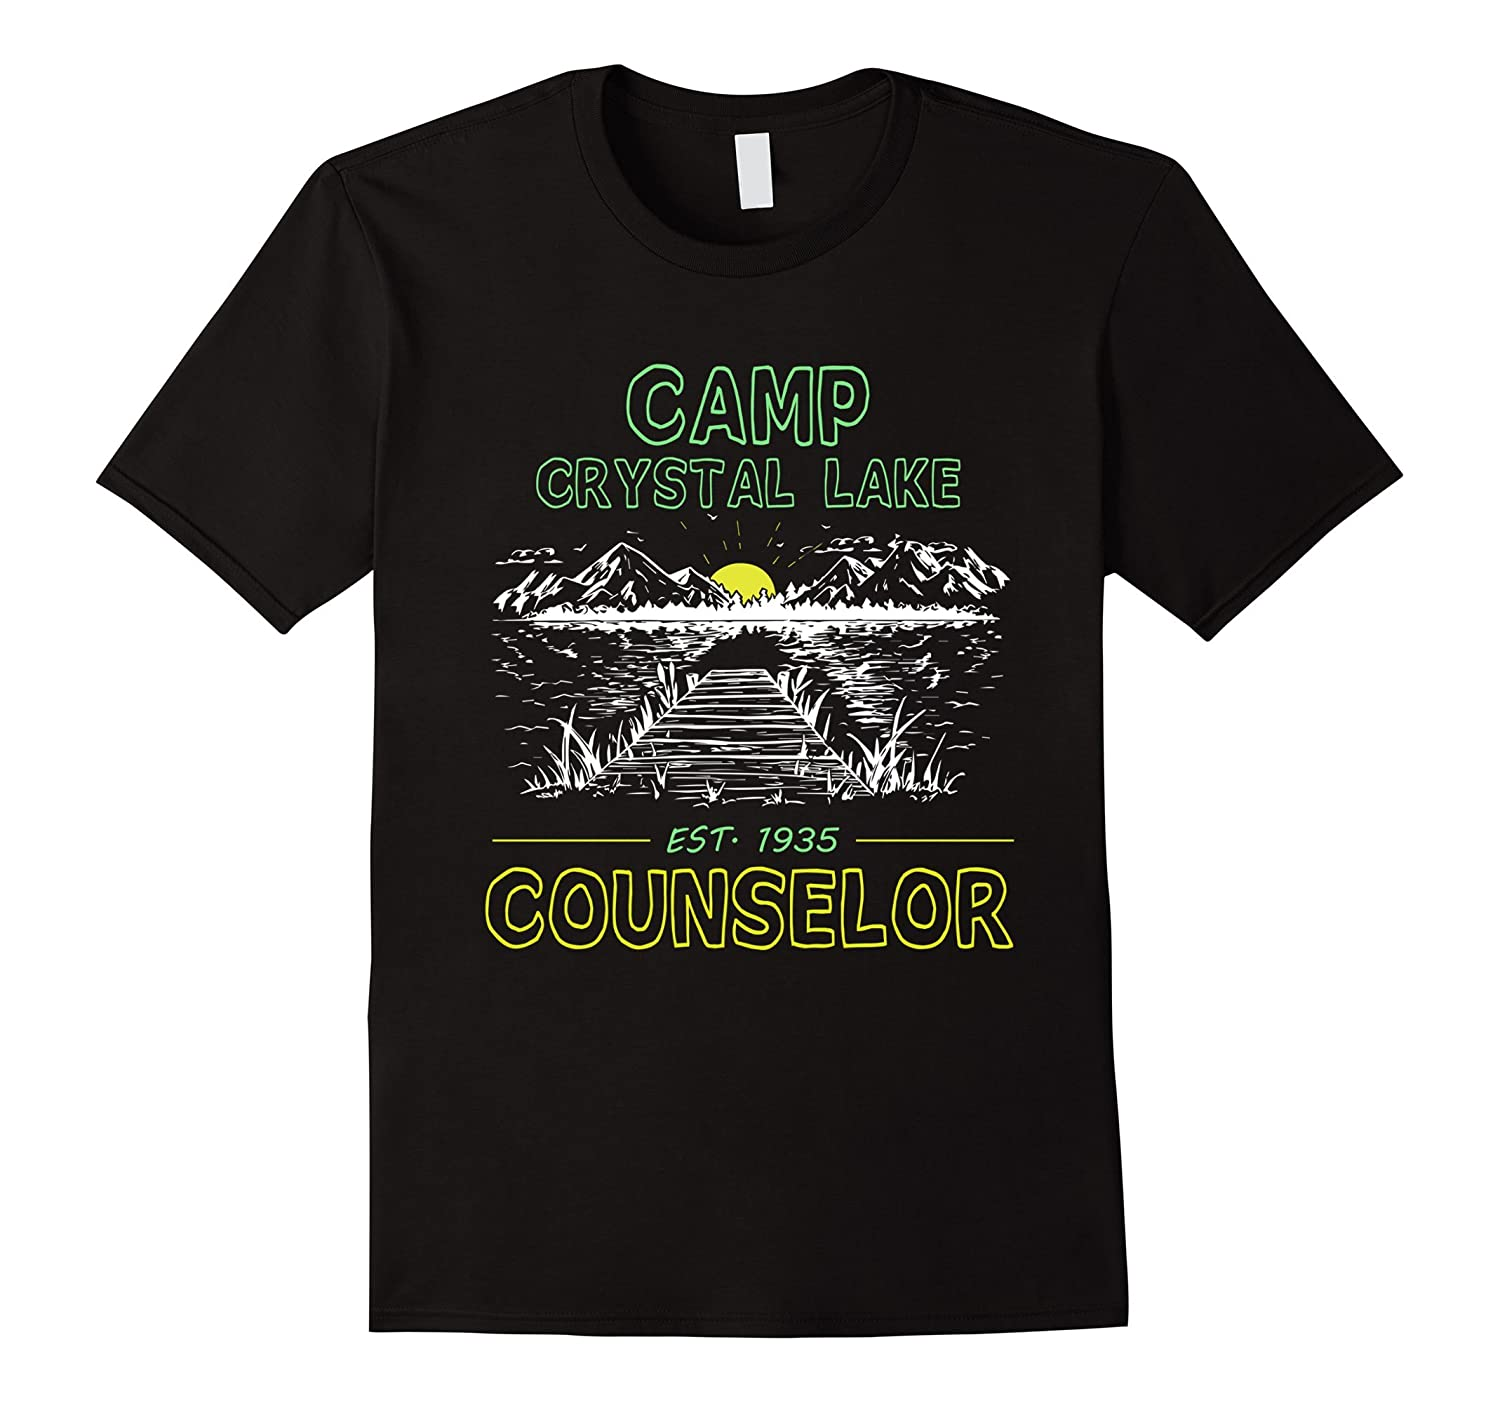 Crystal Lake Counselor est. 1935 Shirt - Outdoor Camp Style-T-Shirt